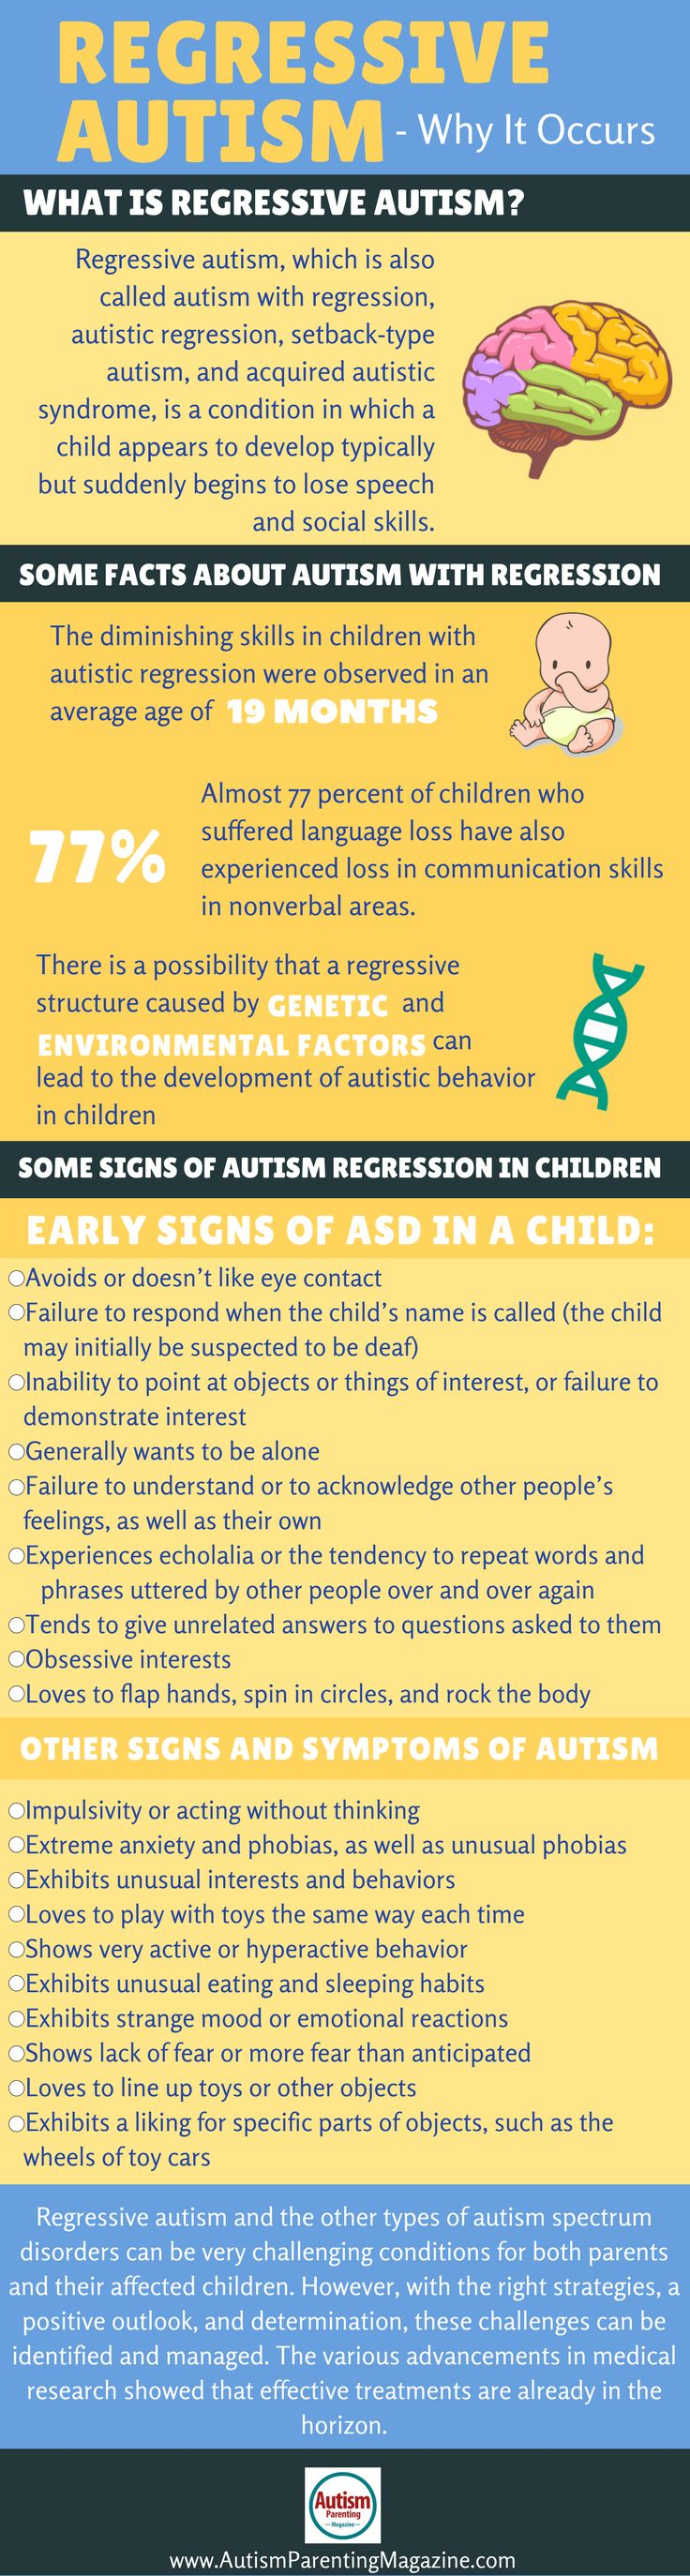 Has your talkative, engaged, and very energetic child suddenly become quiet and uninterested? Does your child exhibit new, unusual habits? If you answered yes, then, he/she may have what's called regressive autism.